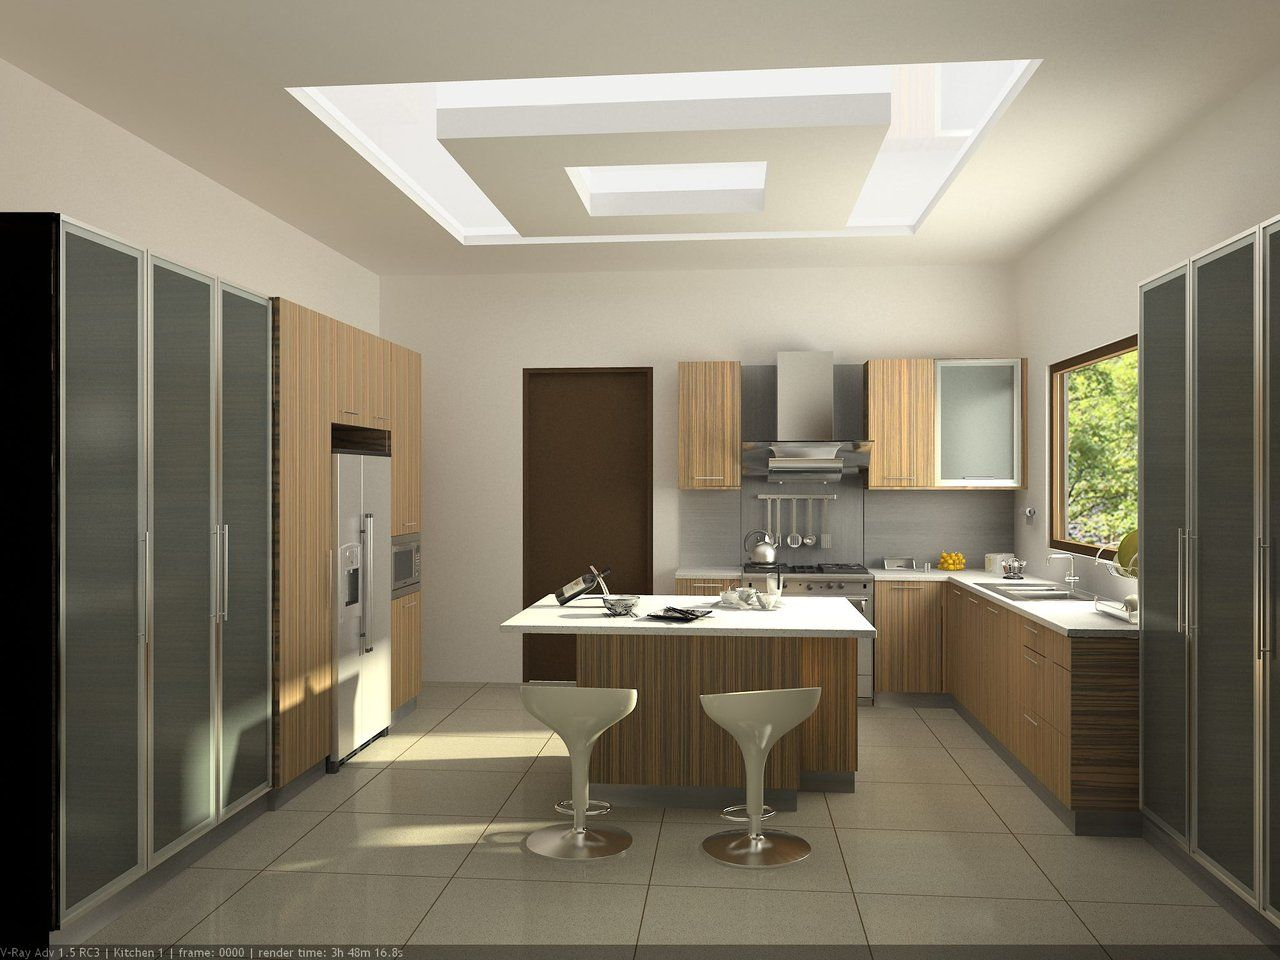 Creative Neutral Kitchen Design Ideas with Modern Wooden. Kitchen Cathedral Ceiling Ideas. Contemporary Decoration for Vaulted Ceiling Kitchen Lighting Ideas. Best 20 Vaulted Ceiling Kitchen Ideas Onbeamed